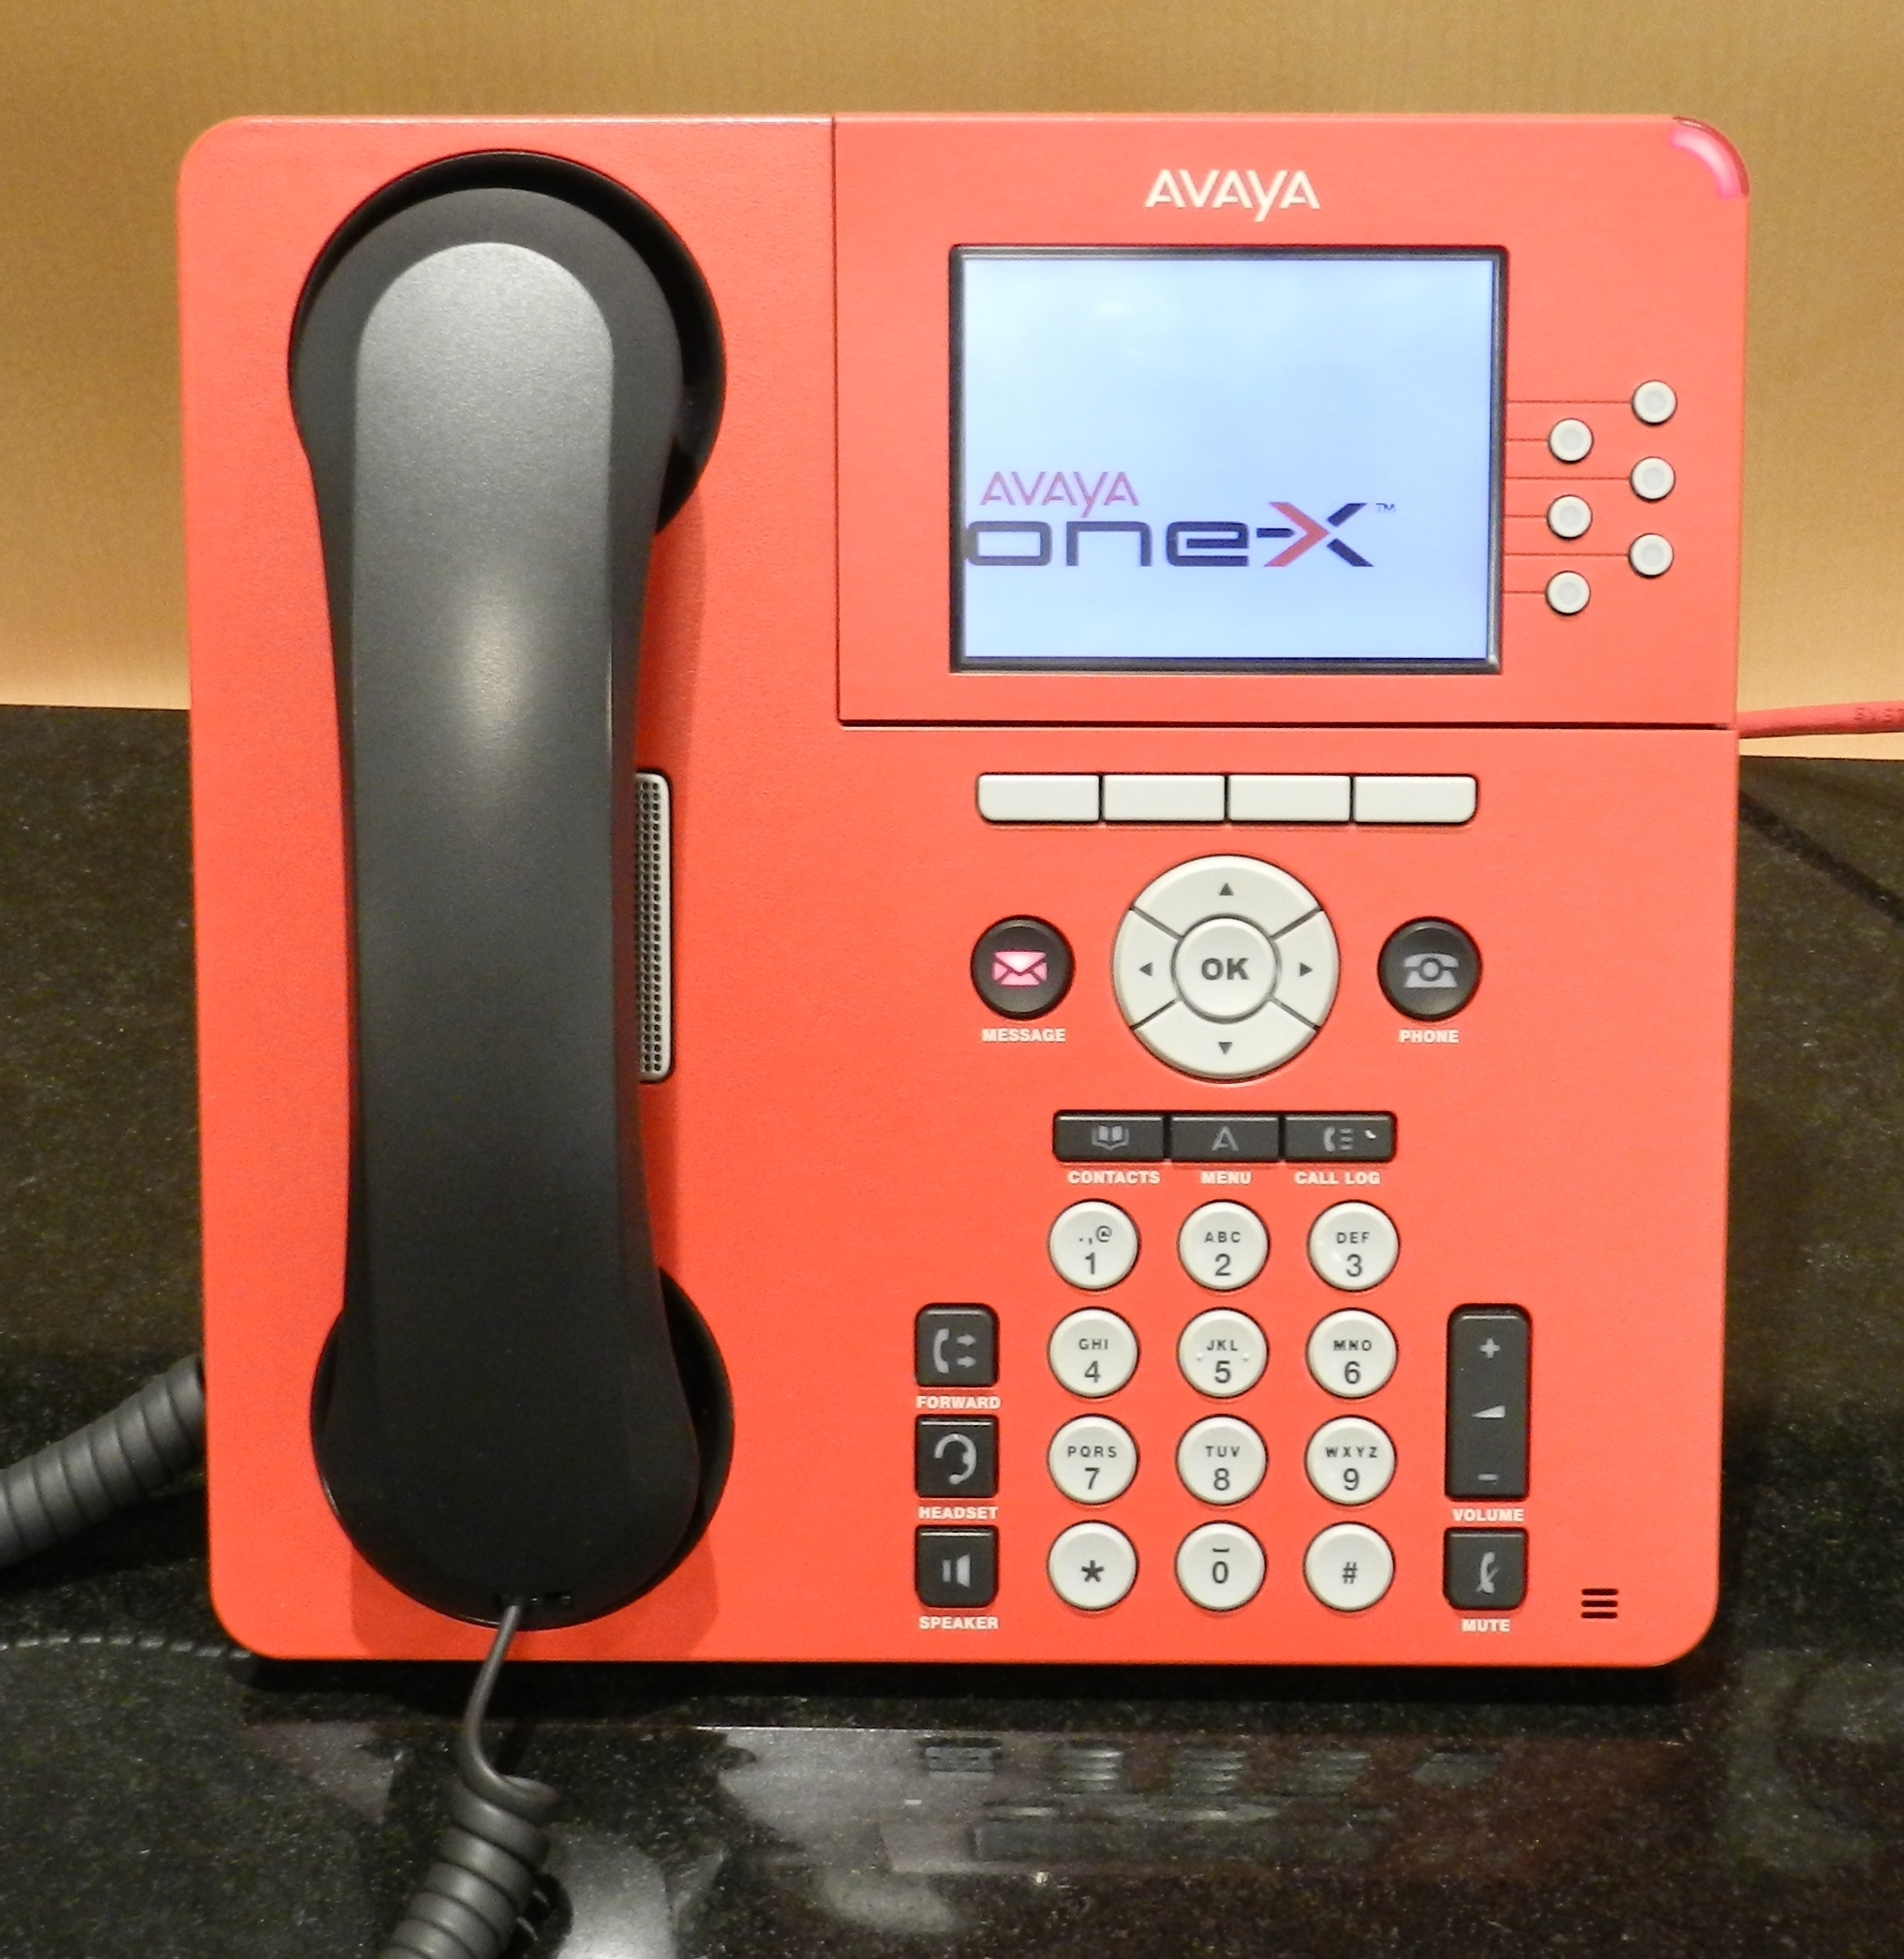 conference phone conferencing avaya audio ip analogue pmc telecom from office